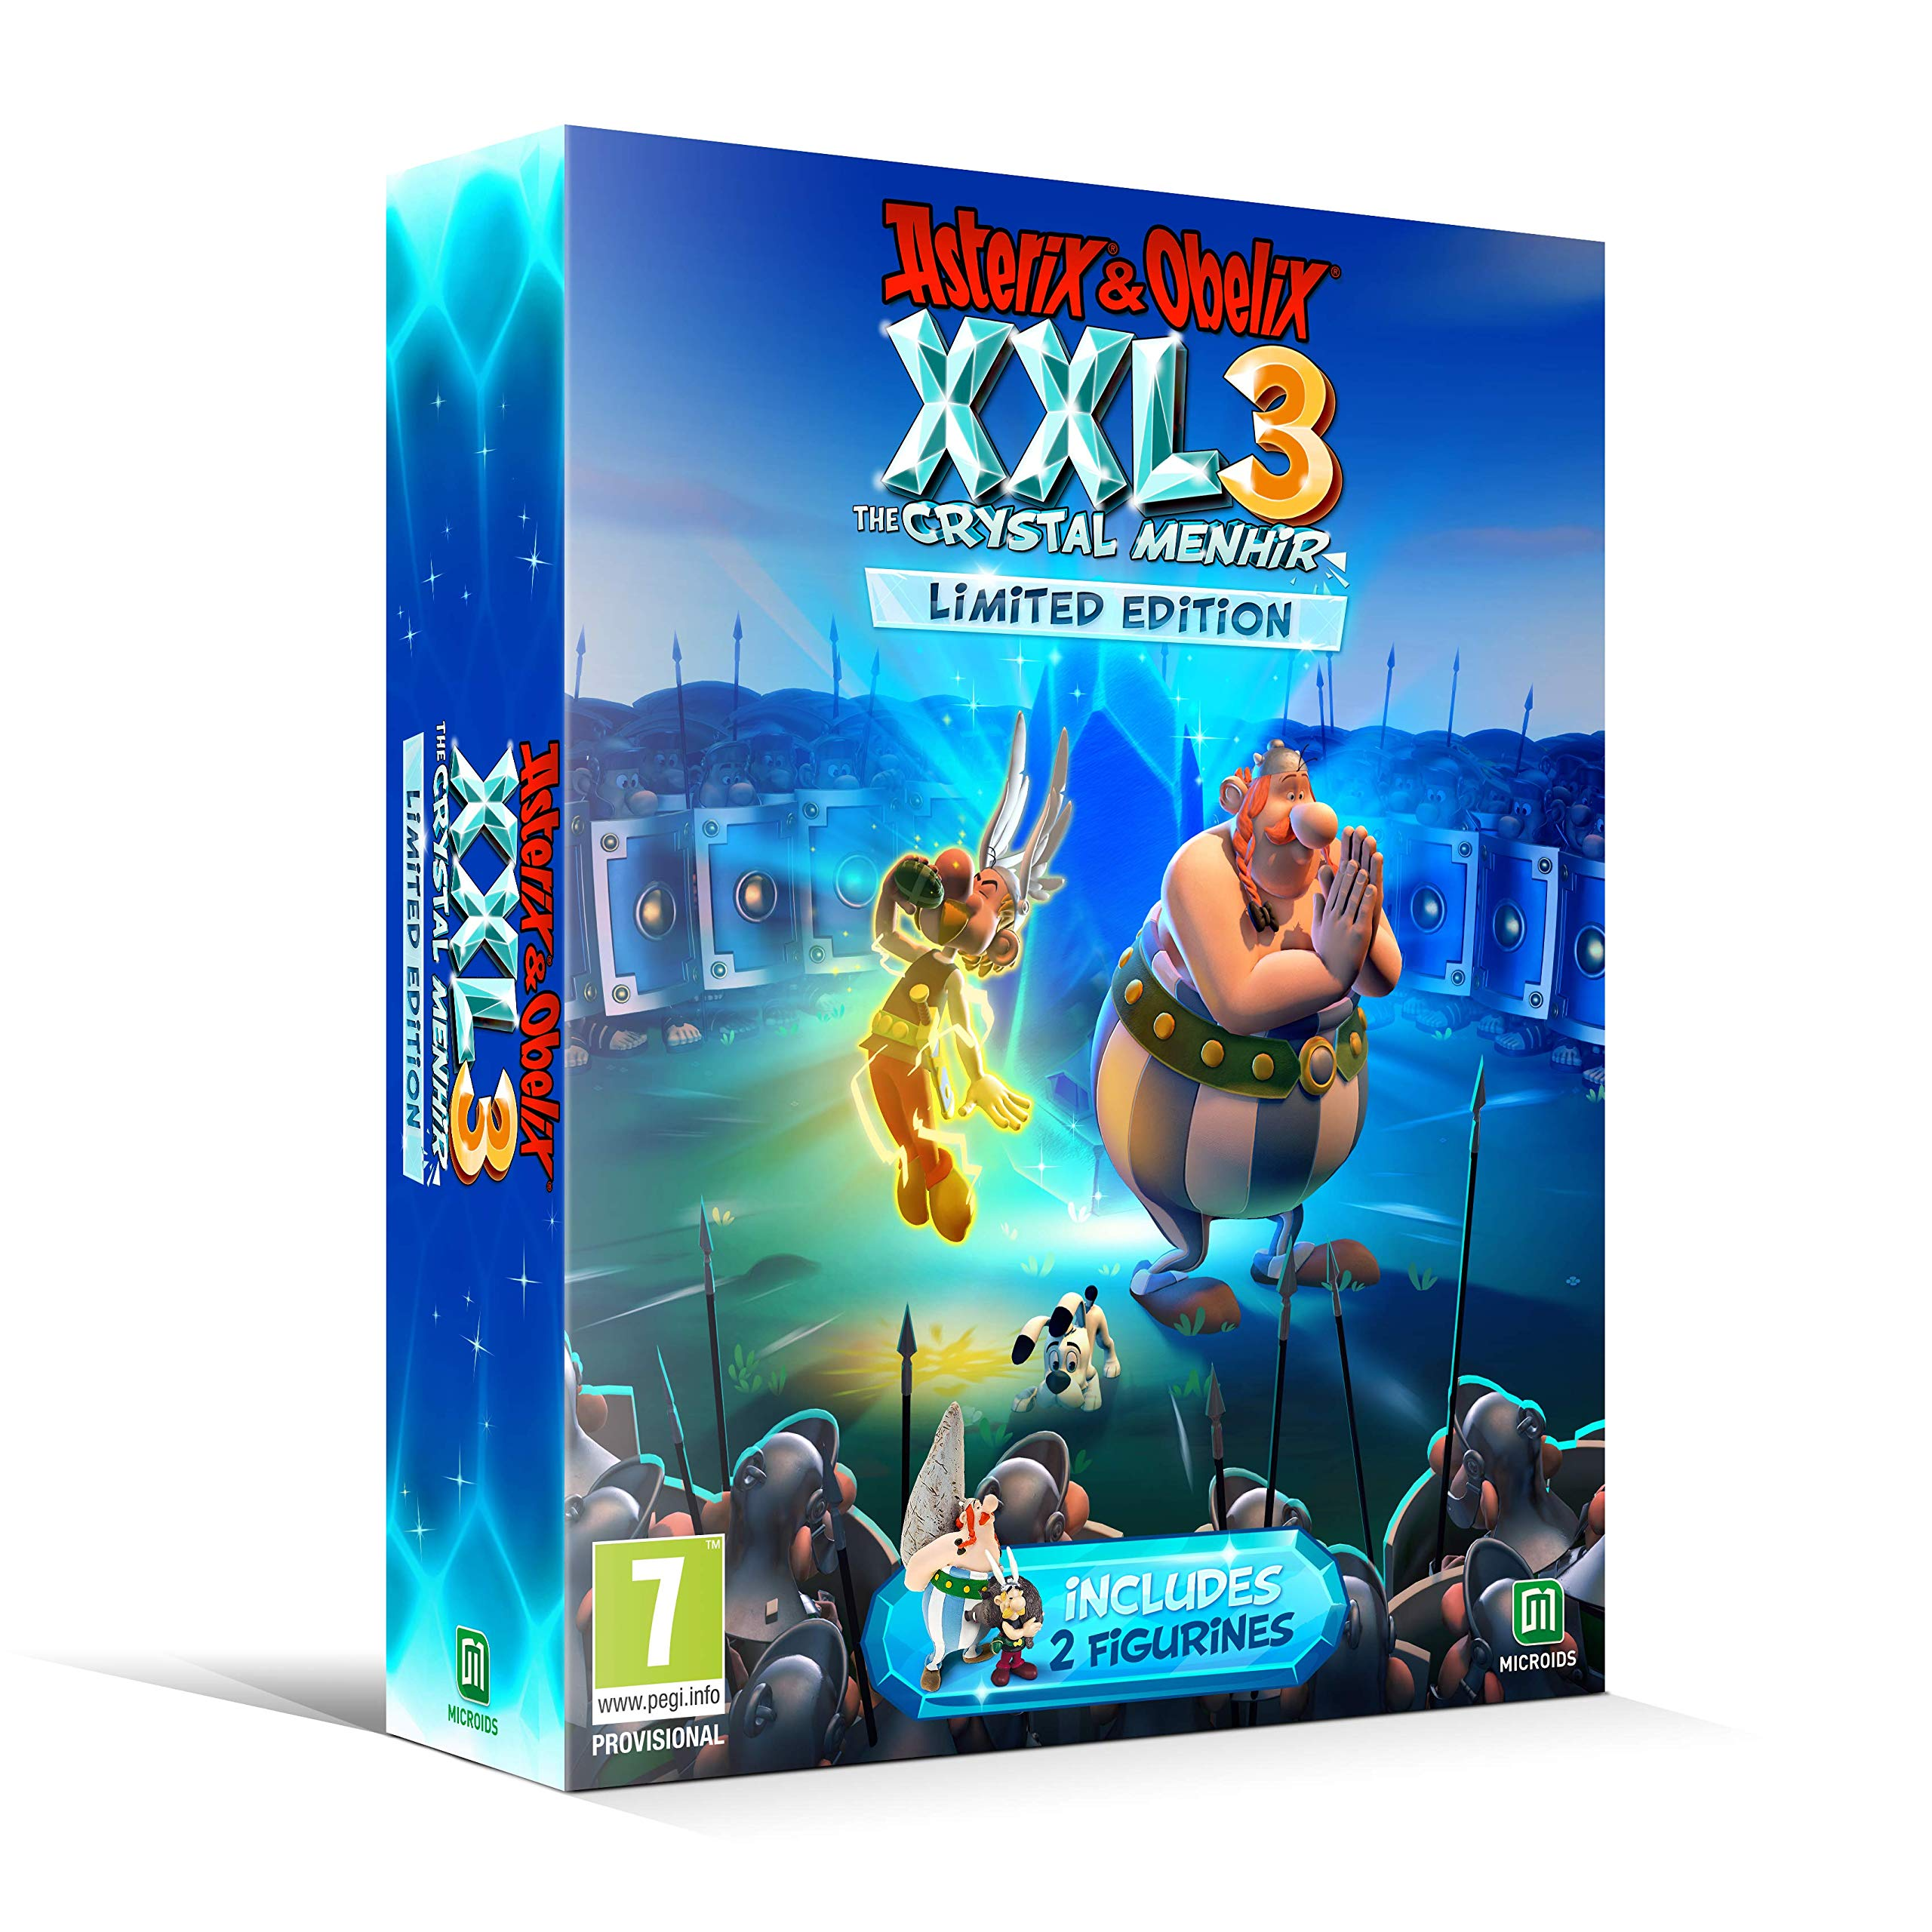 Asterix & Obelix XXL 3 The Crystal Menhir Limited Edition - PlayStation 4 Játékok